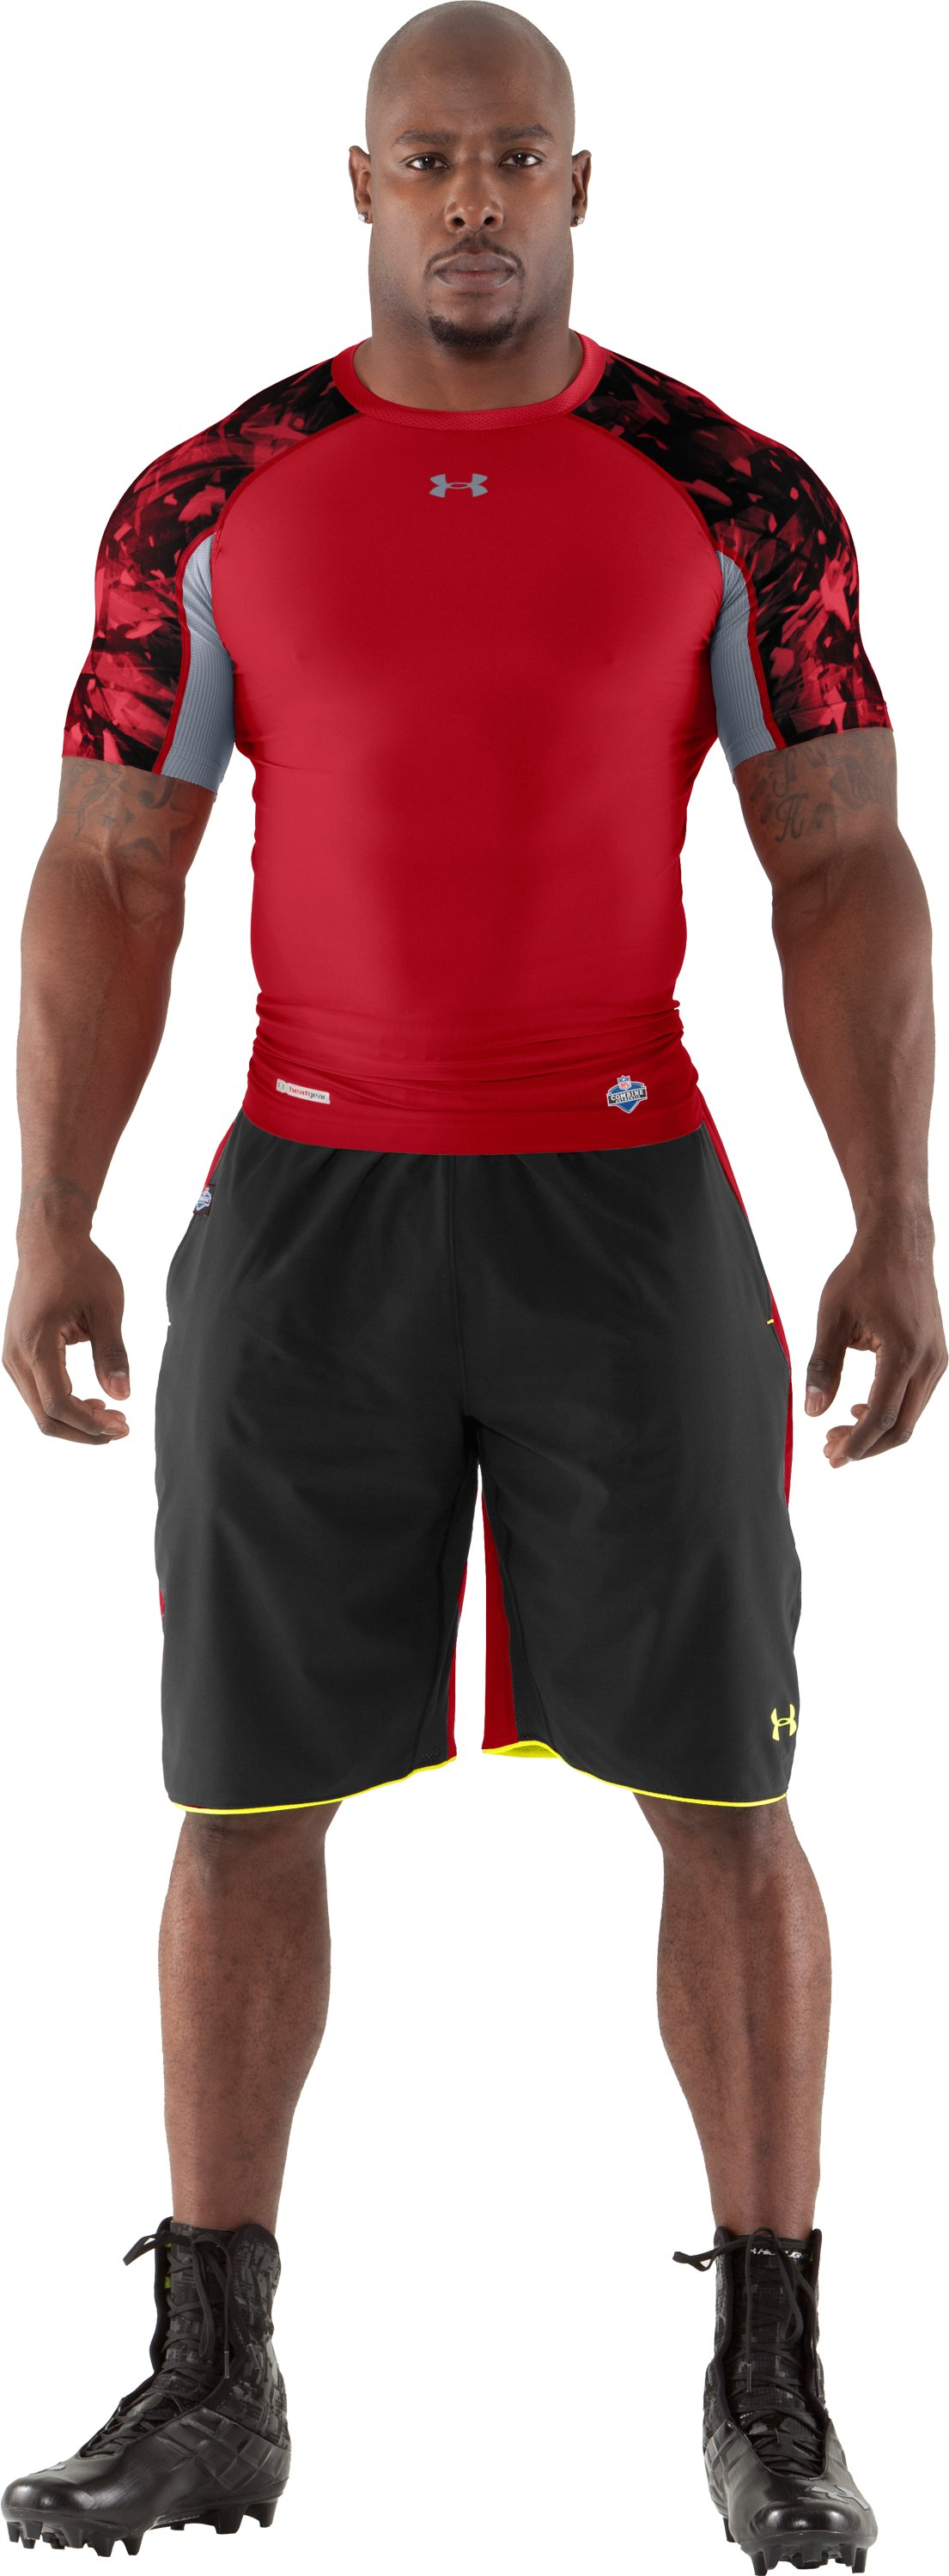 Men's NFL Combine Authentic Compression Short Sleeve, Red, Front